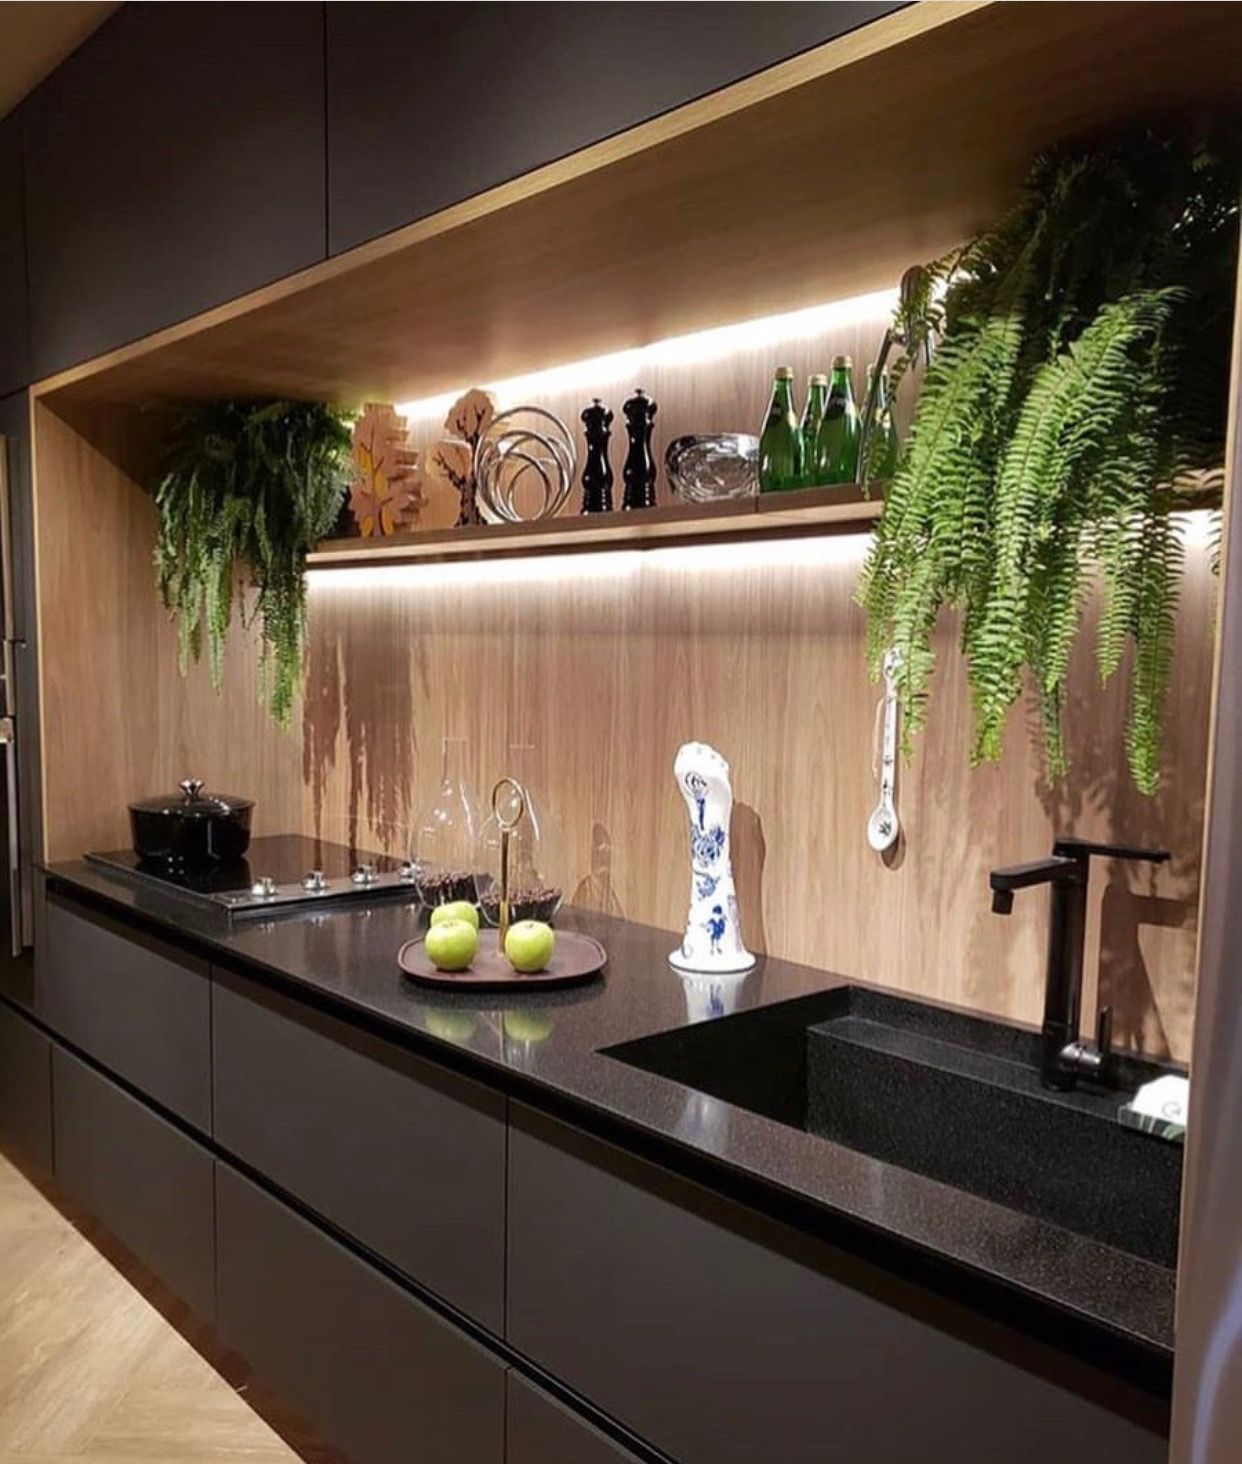 Painted Kitchen Ideas For Walls: Decorating Kitchen Walls Ideas Is Agreed Important For